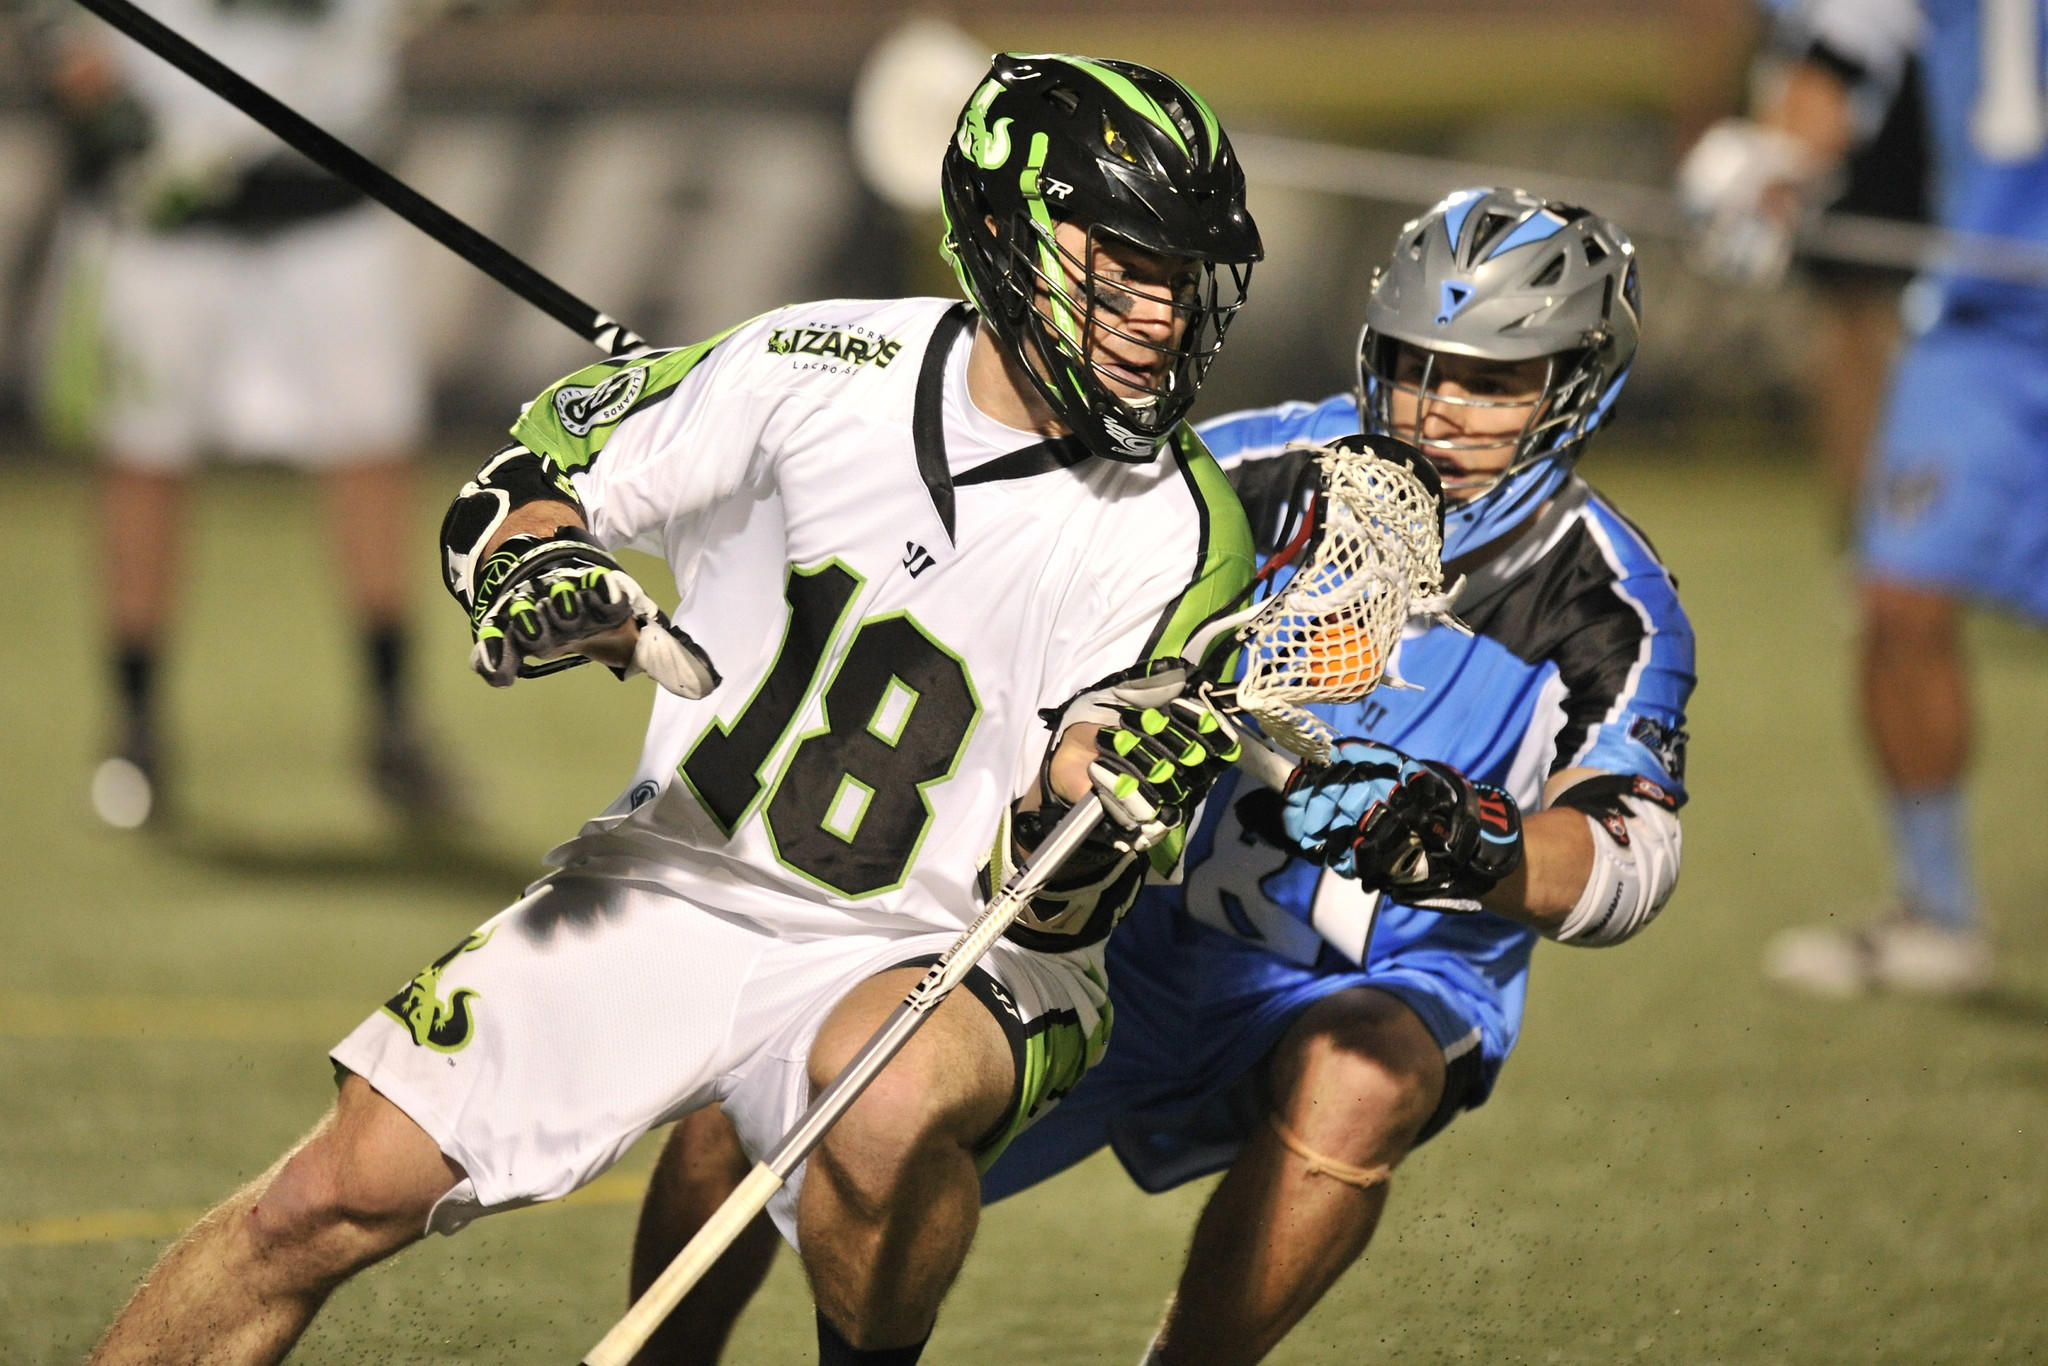 DELAWARE, OH - MAY 18: Stephen Peyser #18 of the New York Lizards controls the ball in the fourth period as Kyle Hartzell #81 of the Ohio Machine defends on May 18, 2013 at Selby Stadium in Delaware, Ohio. New York defeated Ohio 14-8. (Photo by Jamie Sabau/Getty Images) ORG XMIT: 166352311